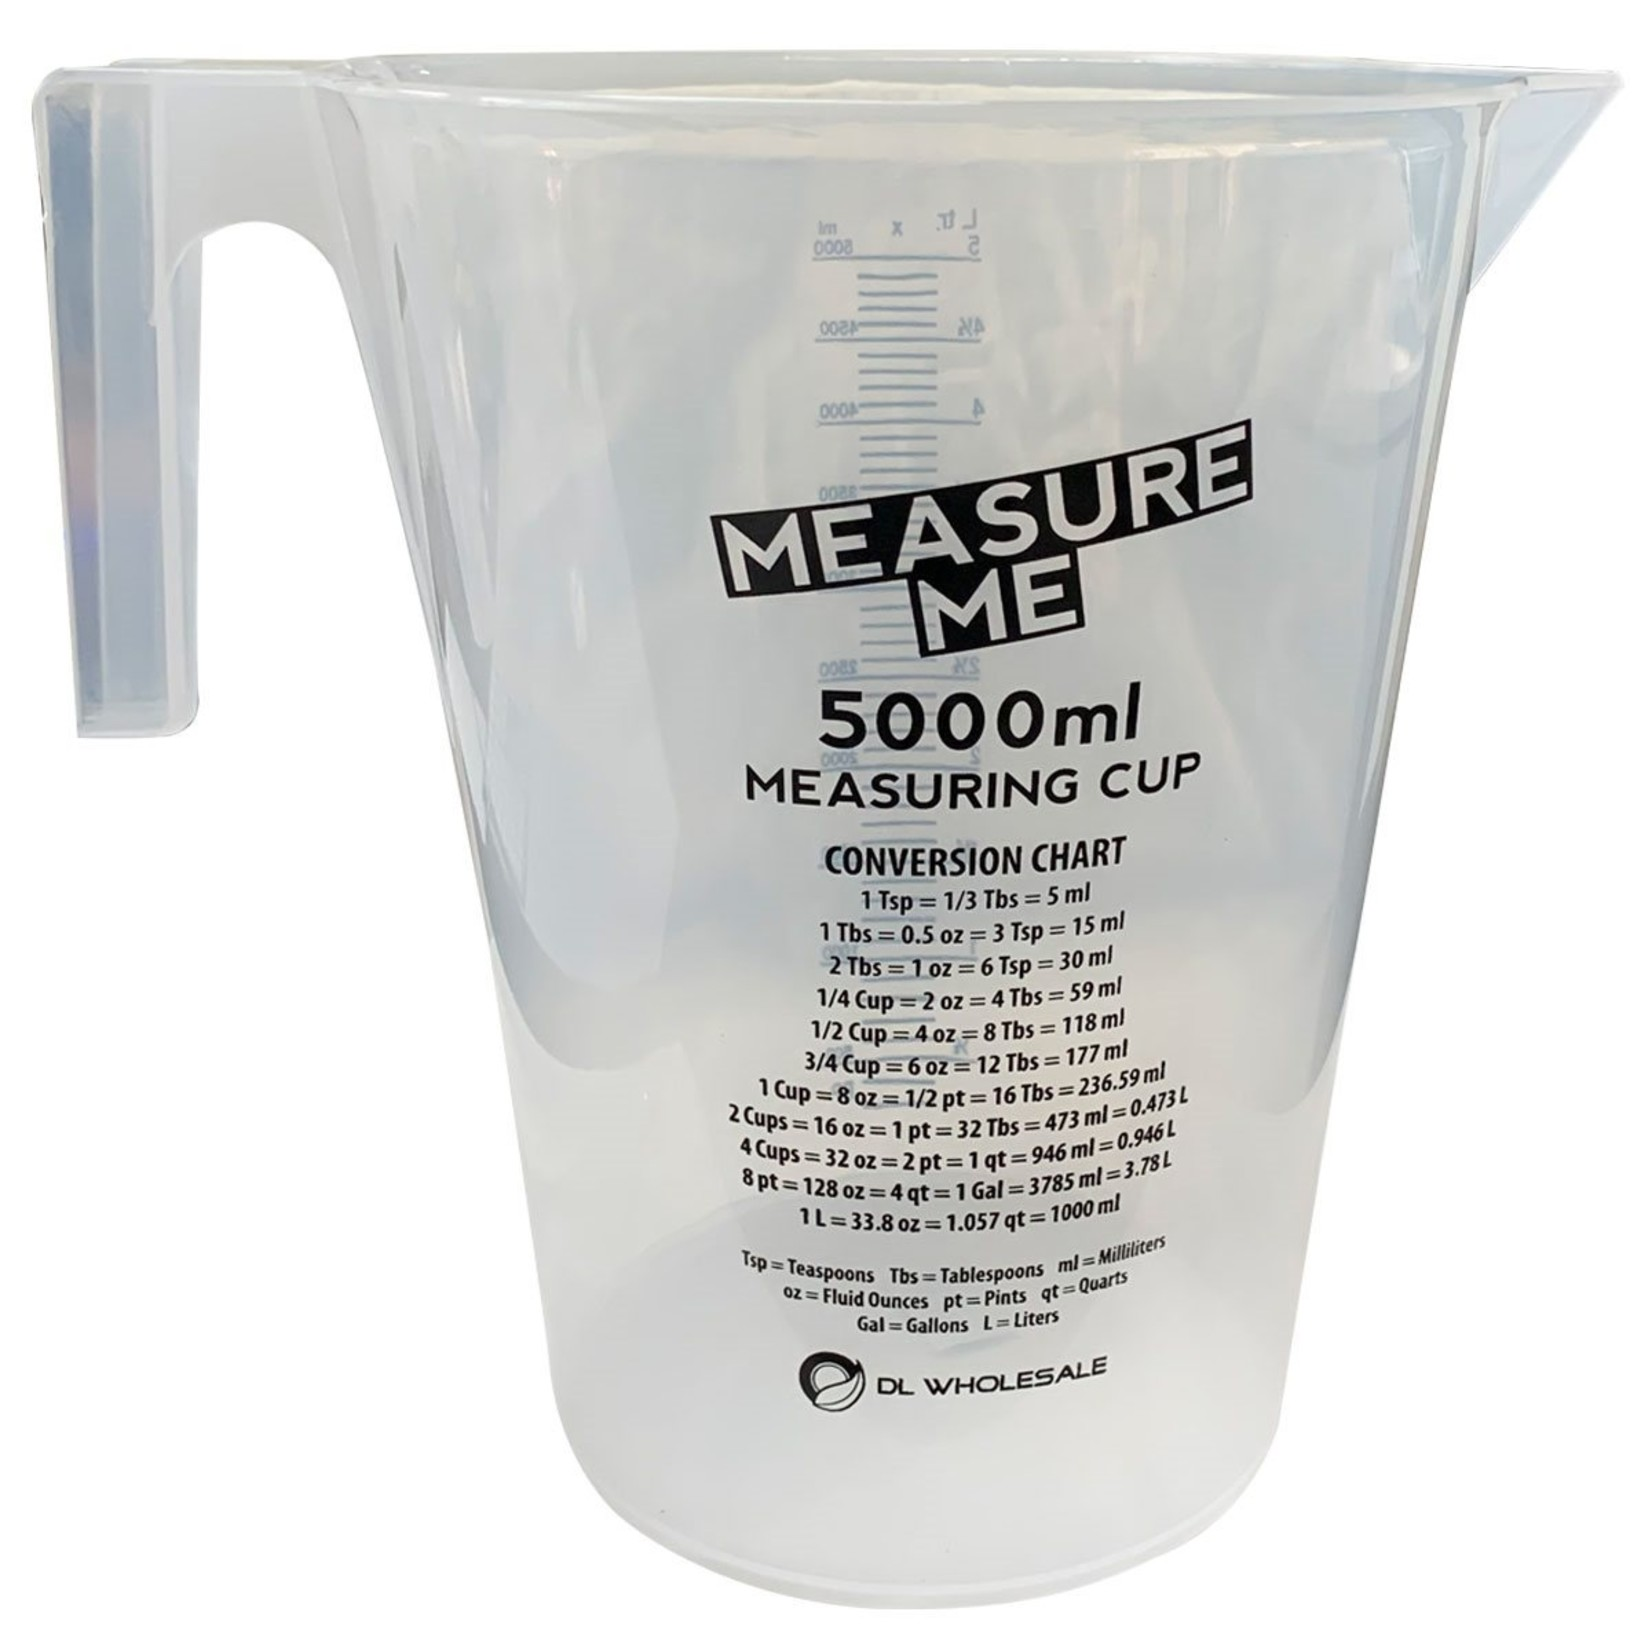 Measuring Cup 5000ml